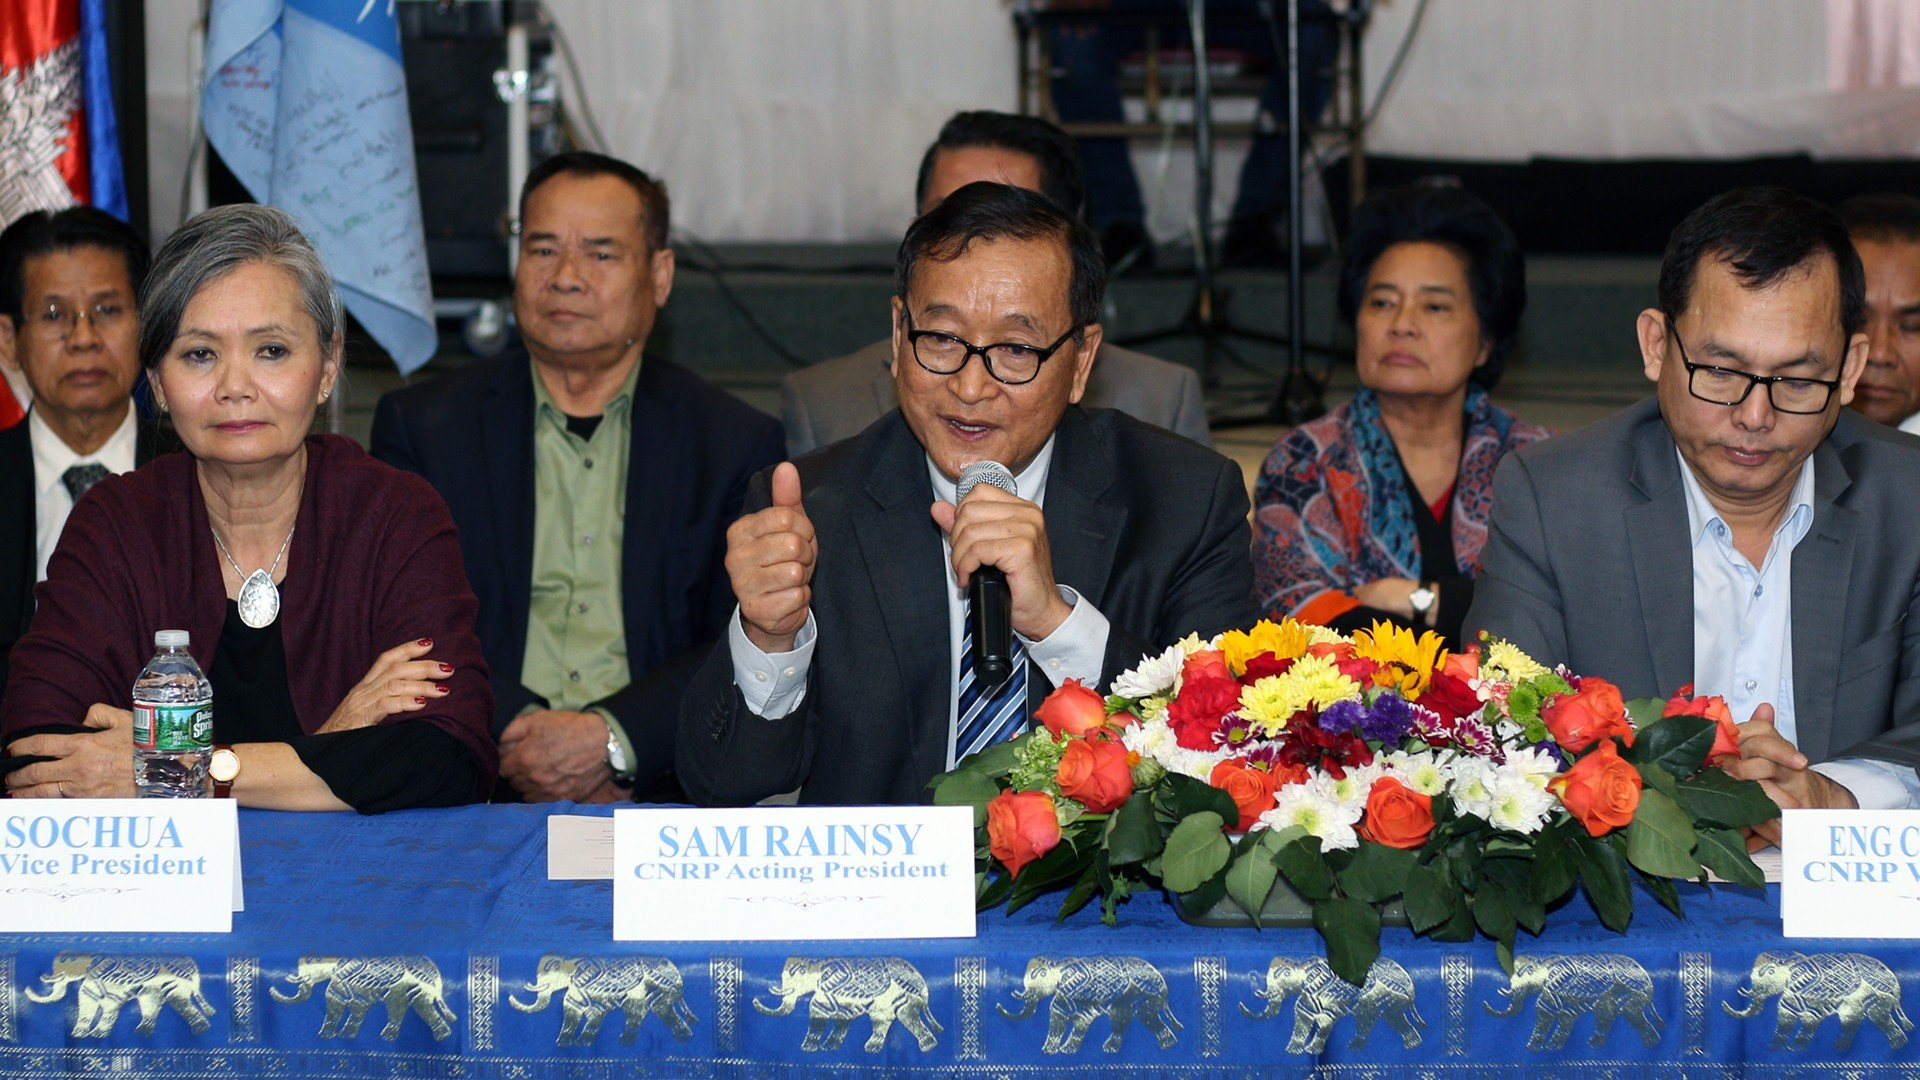 Sam Rainsy (C), Mu Sochua (L), and Eng Chhay Eang (R) speak to reporters during a press conference in the U.S., March 17, 2019.